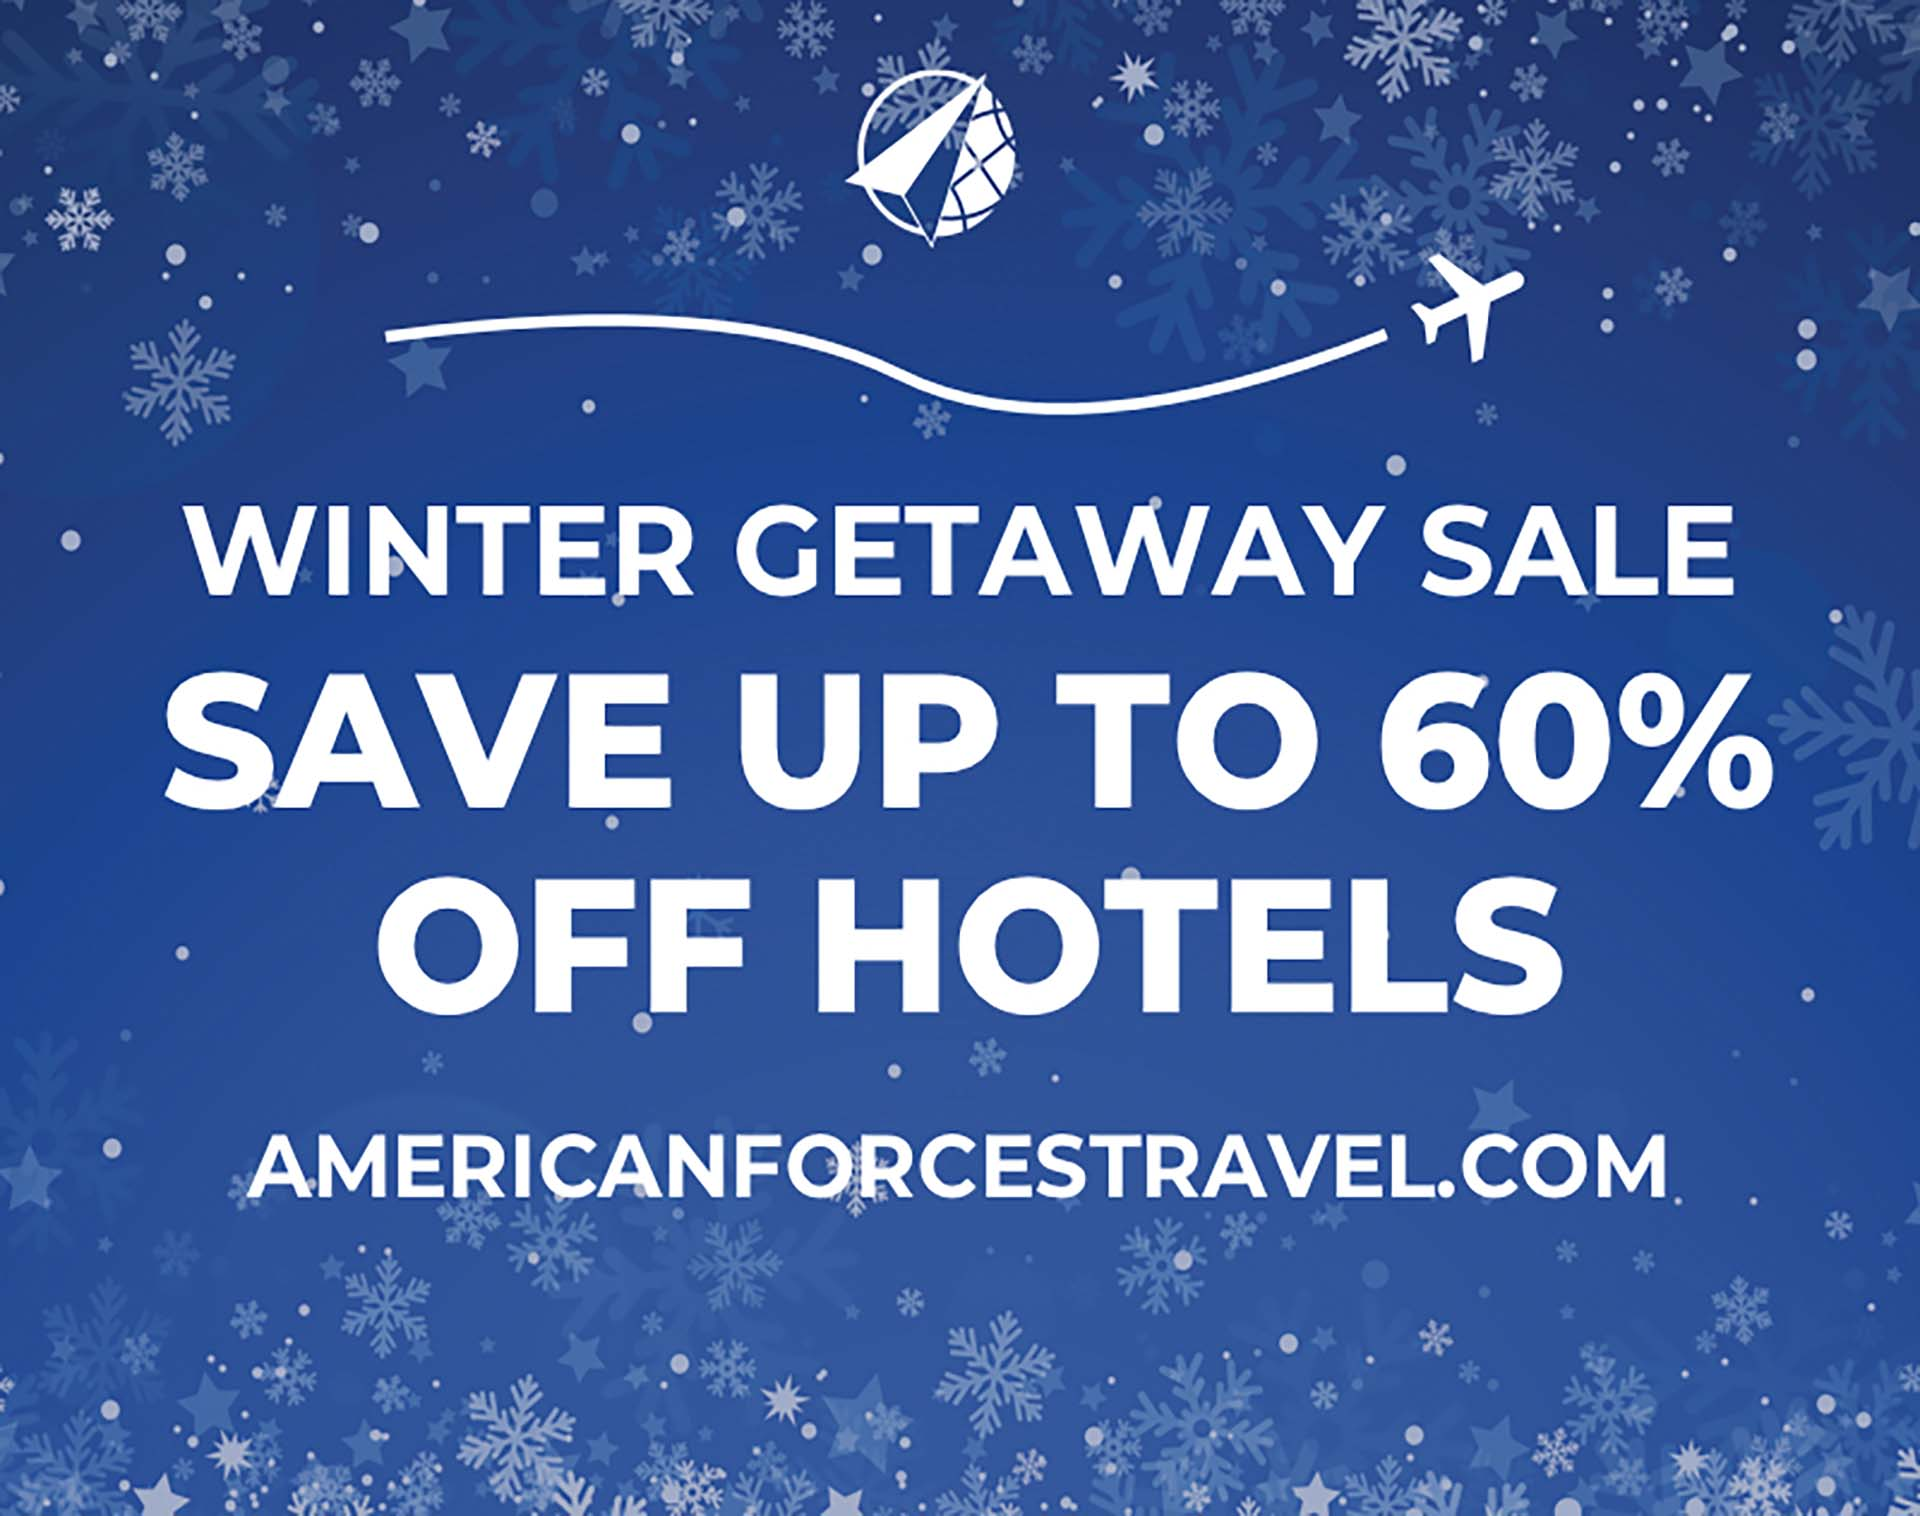 01.01-02.28 ITT Winter Getaway Sale